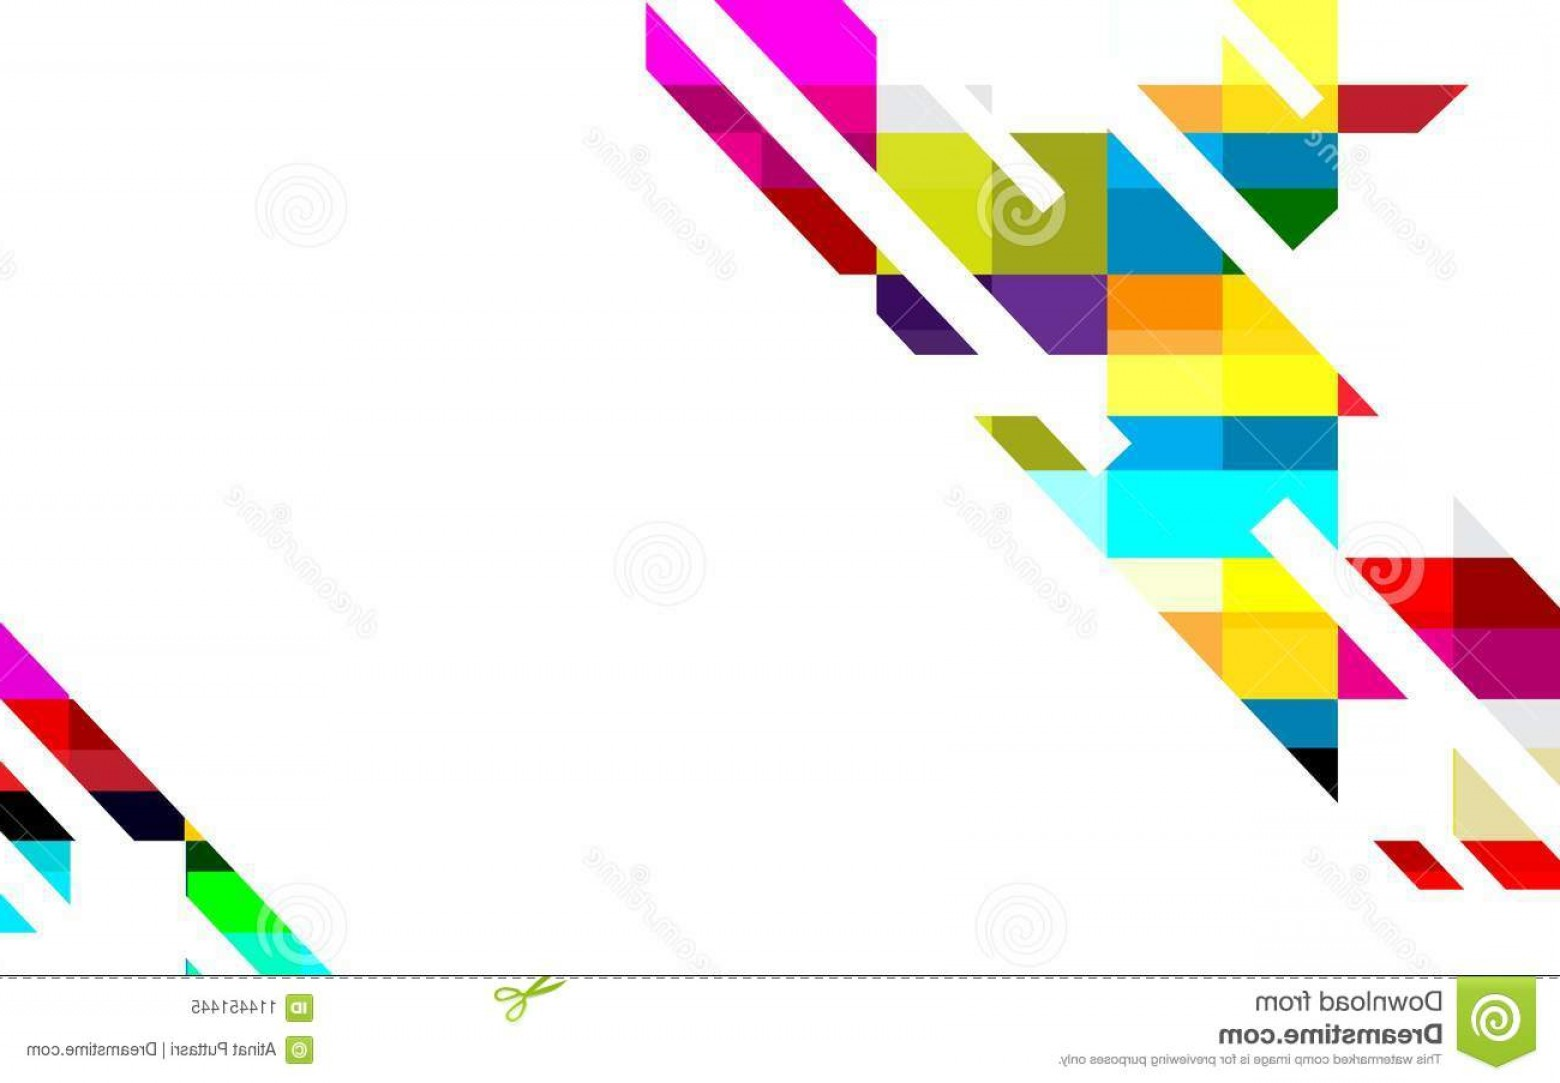 Backgroung Vector: Colorful Abstract Background Vector Design Business Background Colorful Abstract Pattern Background Vector Design Business Image